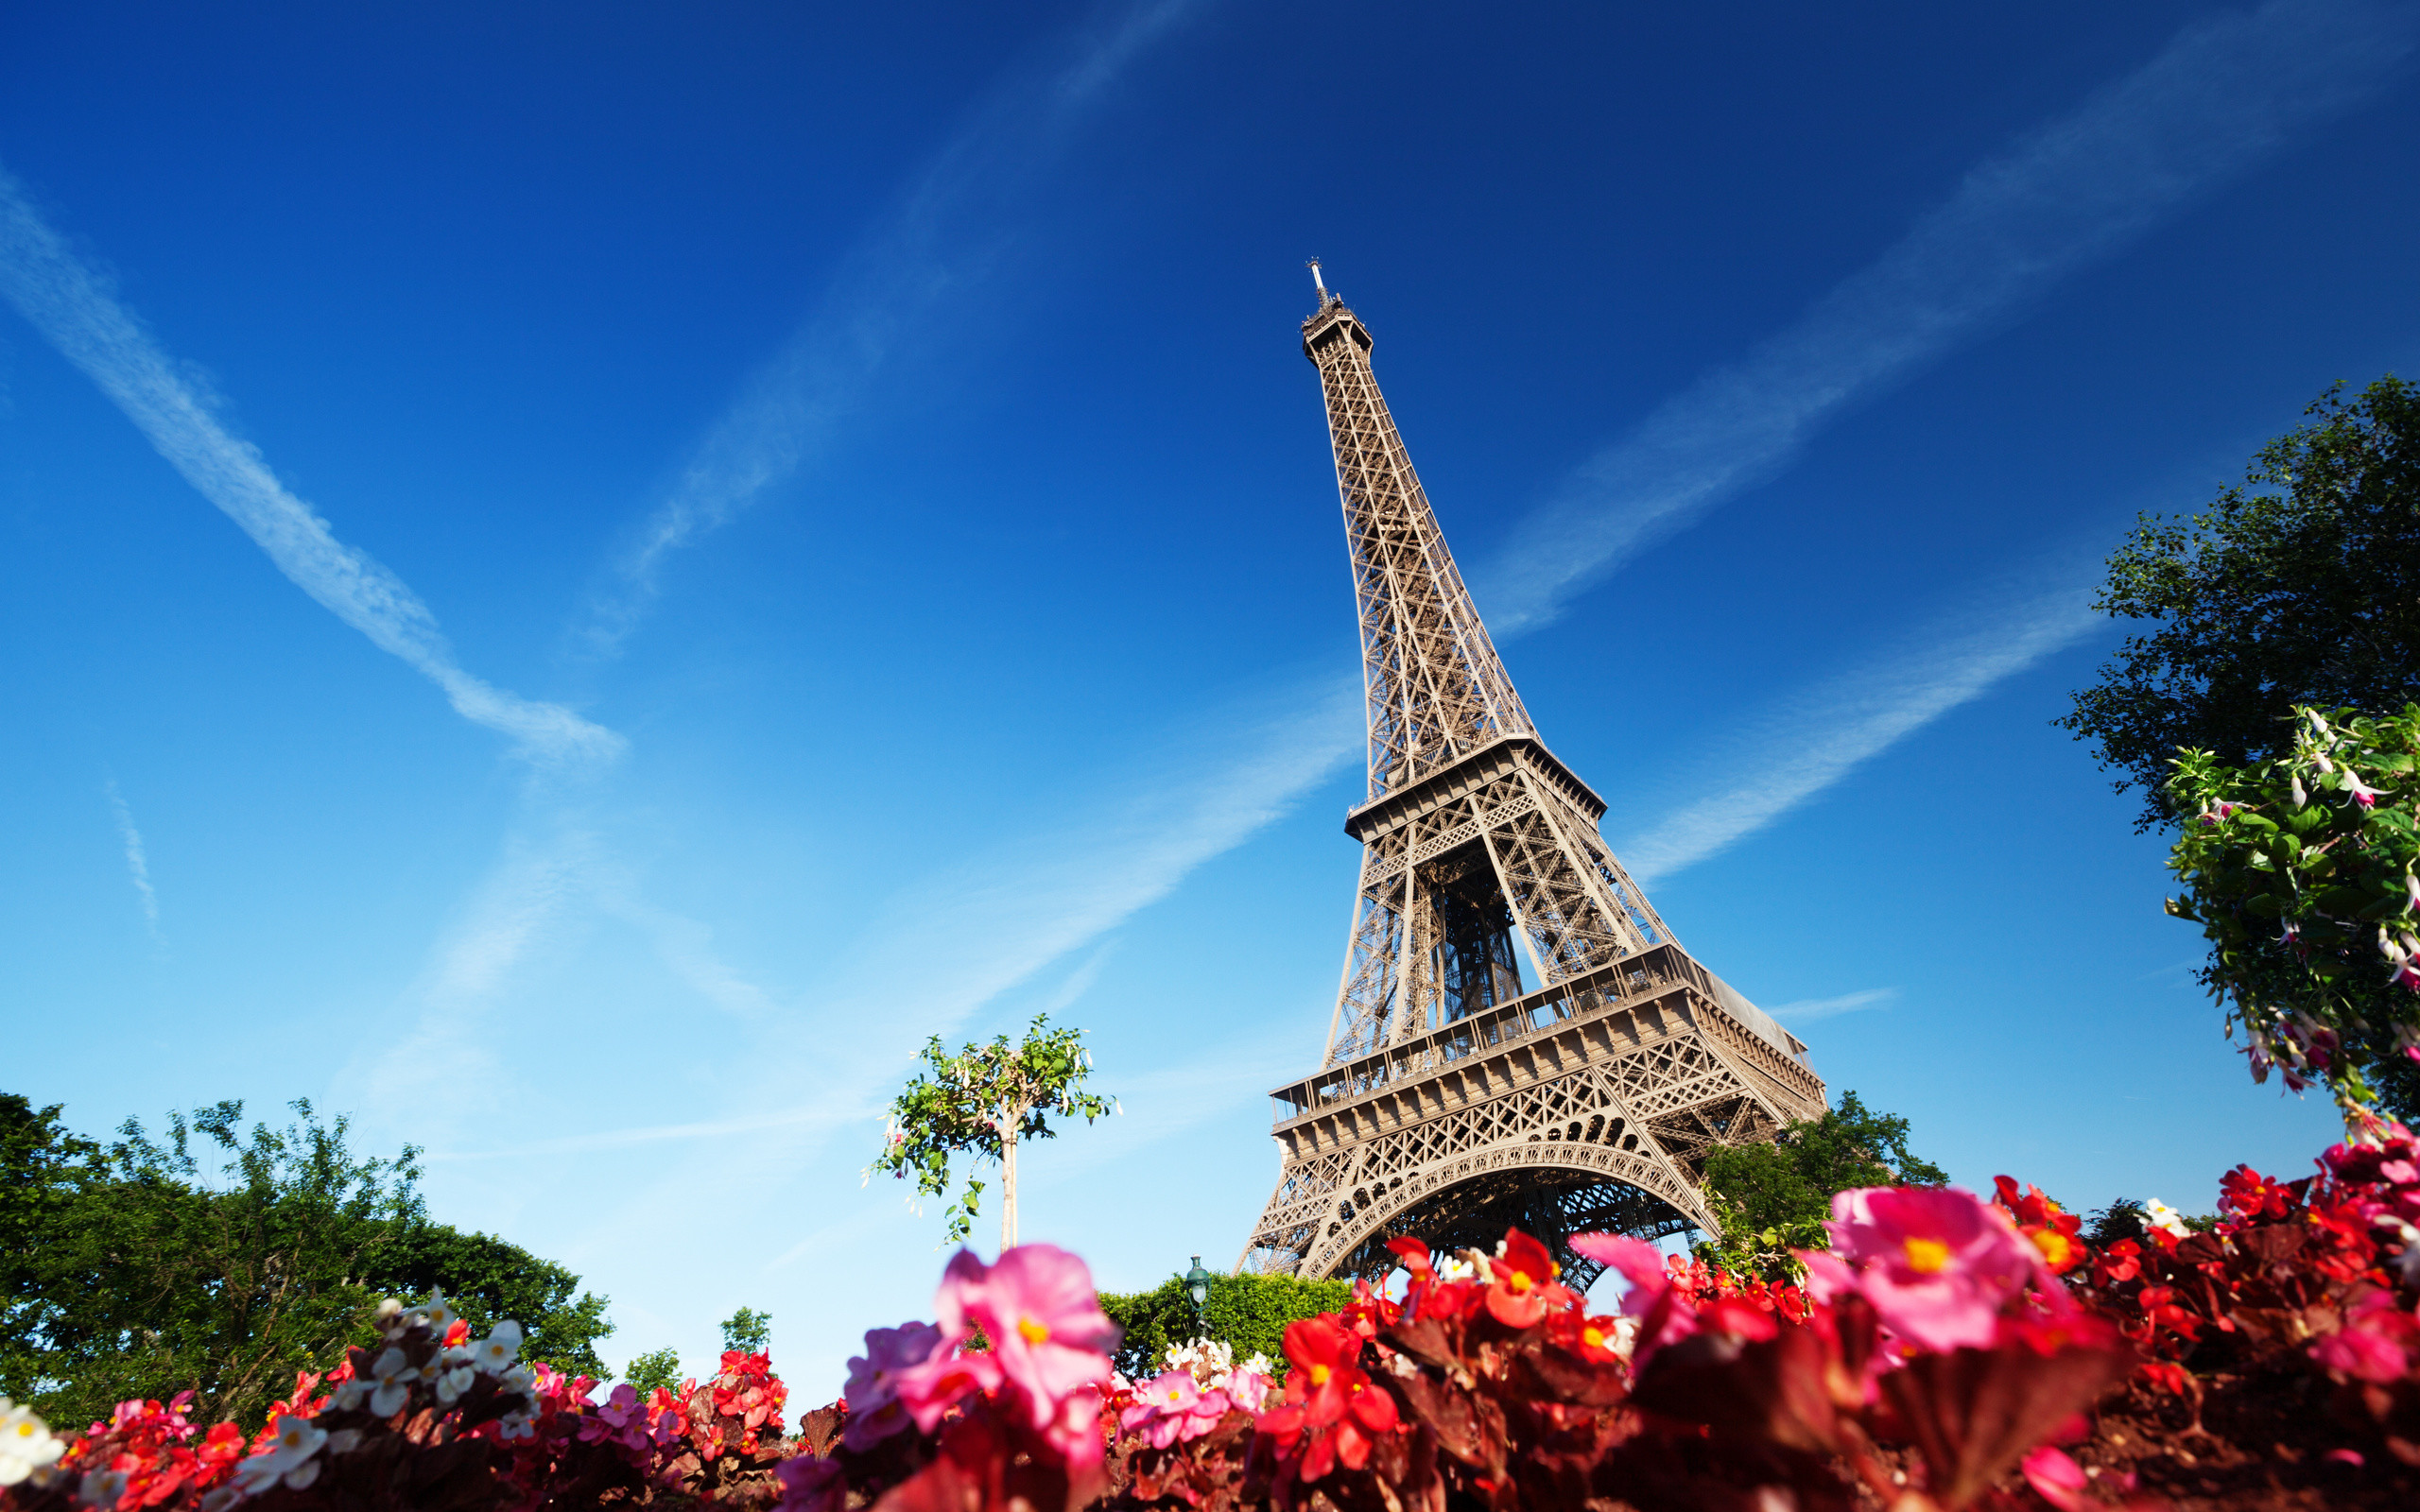 2560x1600 Eiffel Tower and Flowers Wallpaper